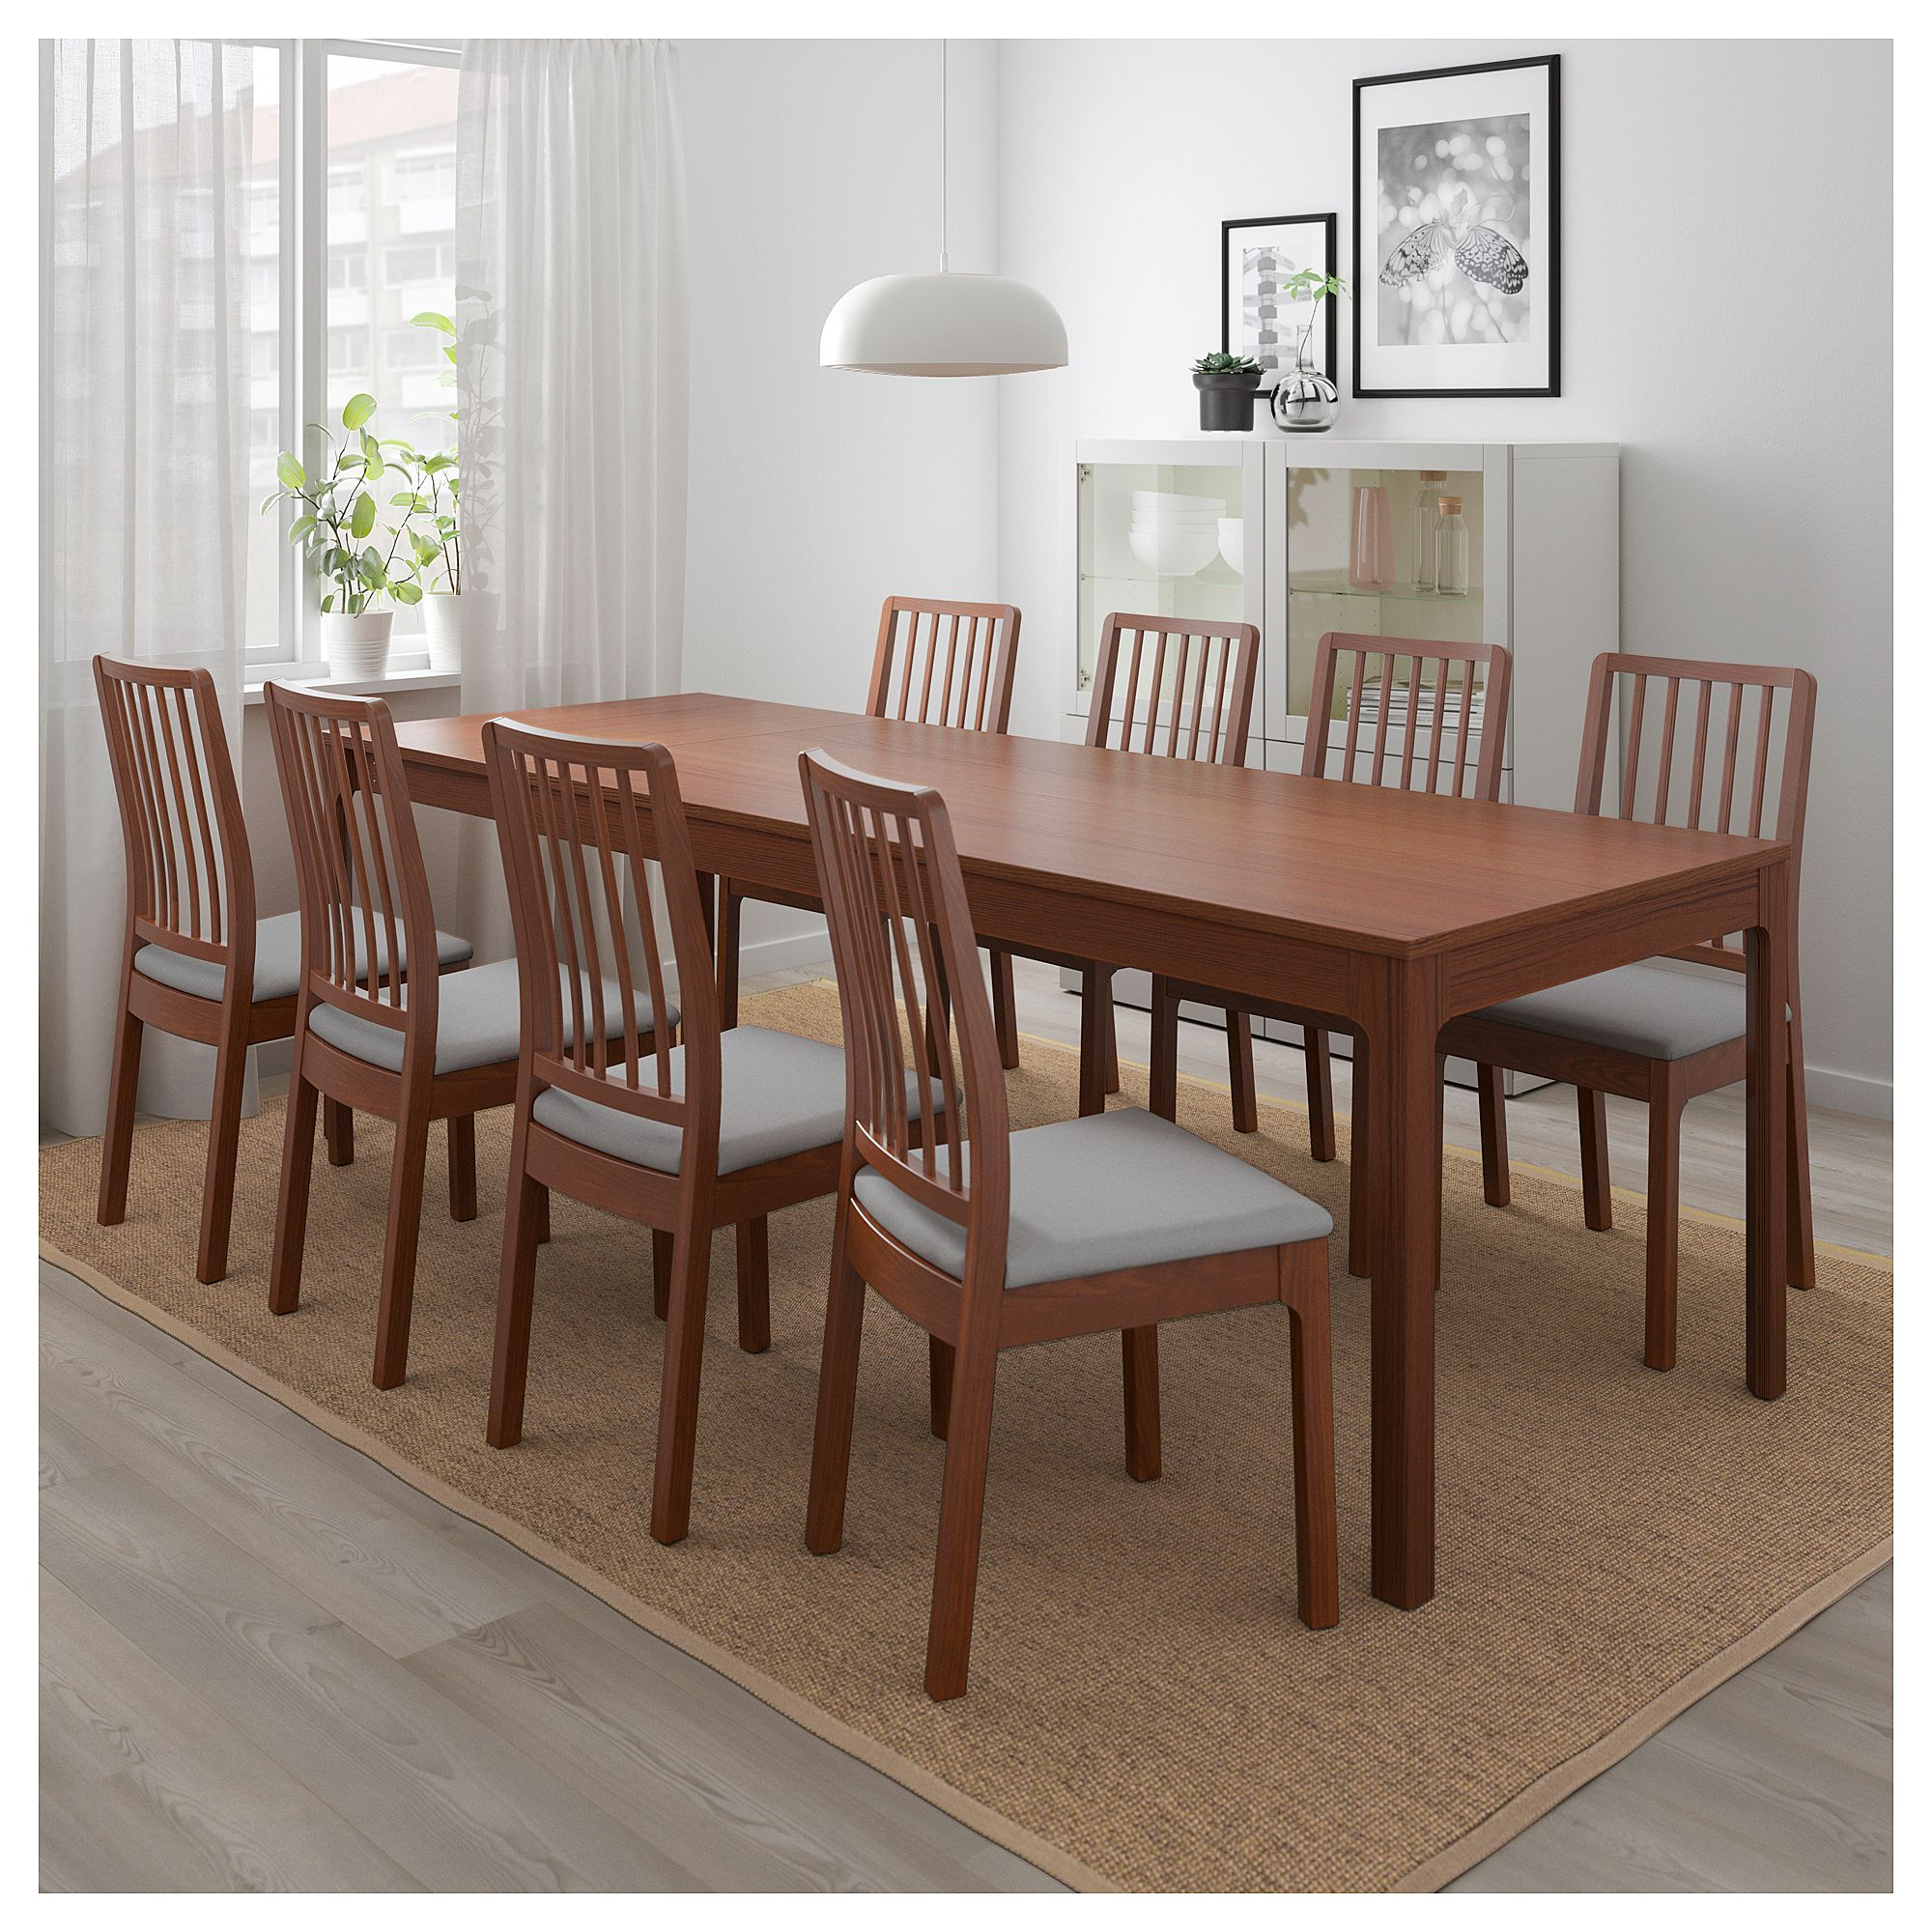 Ikea Ekedalen Extendable Table Brown Future House Ikea Dining